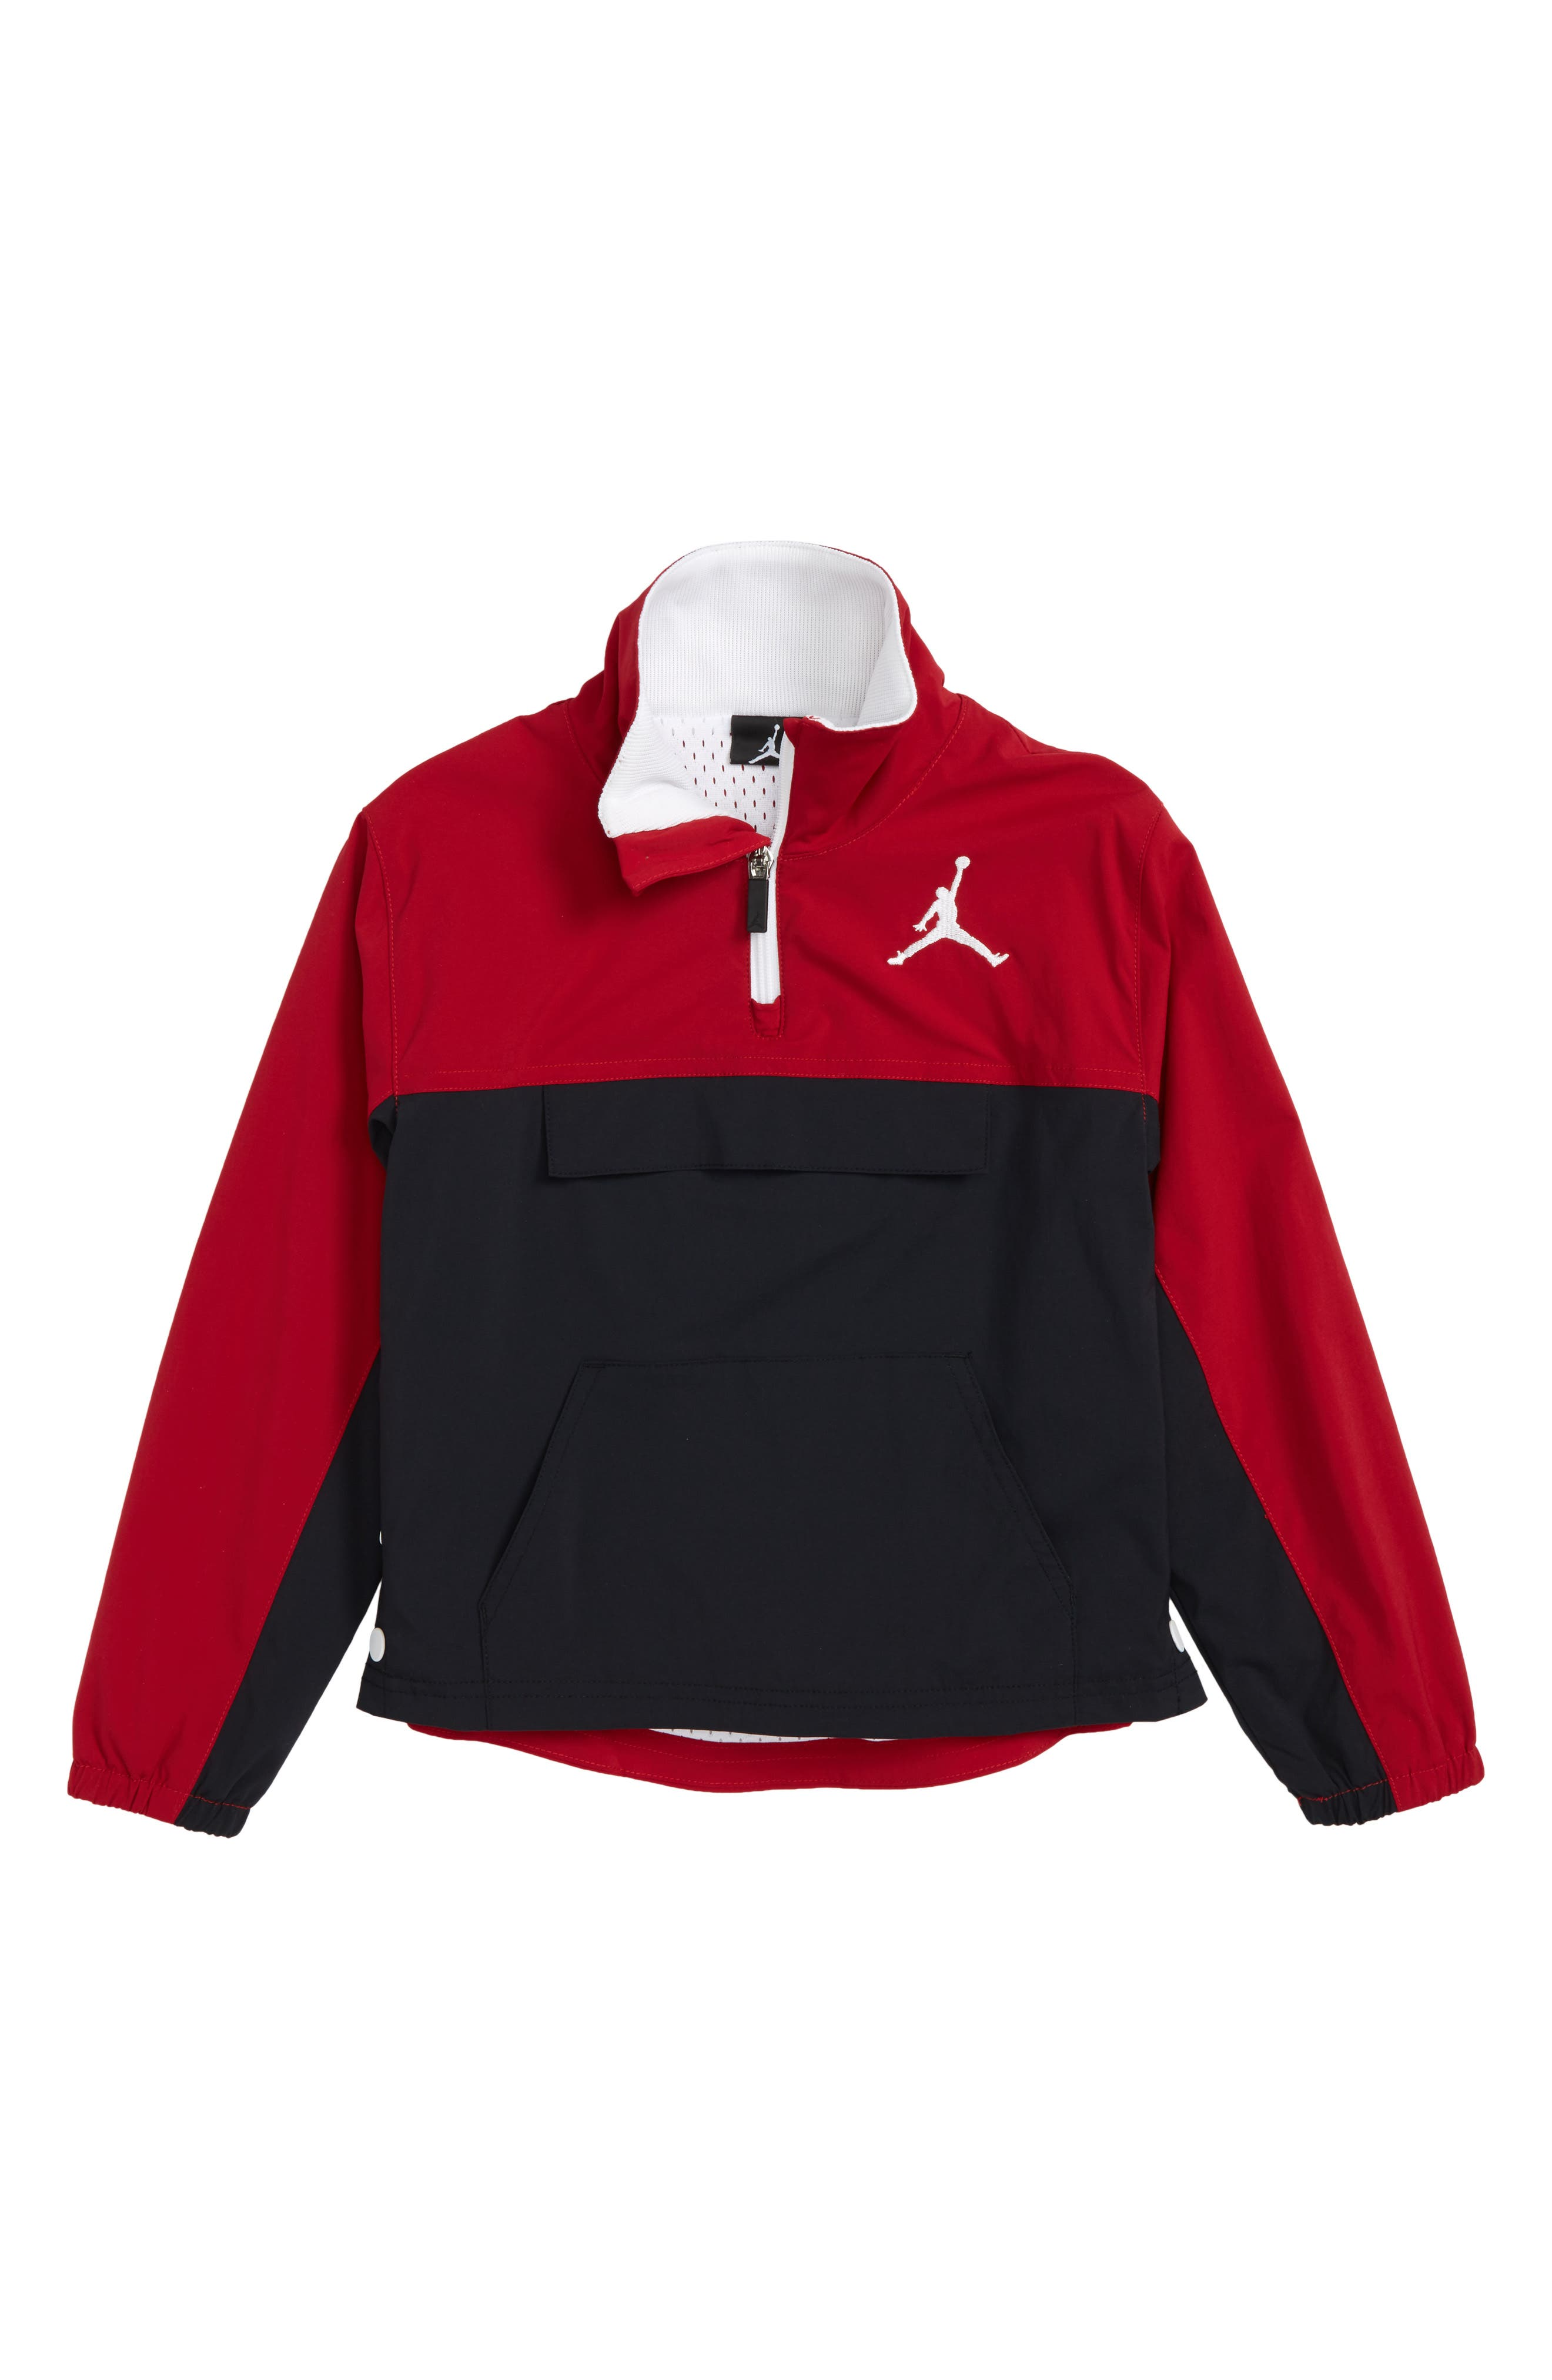 Jordan AJ '90s Popover Quarter Zip Pullover,                             Main thumbnail 1, color,                             Black